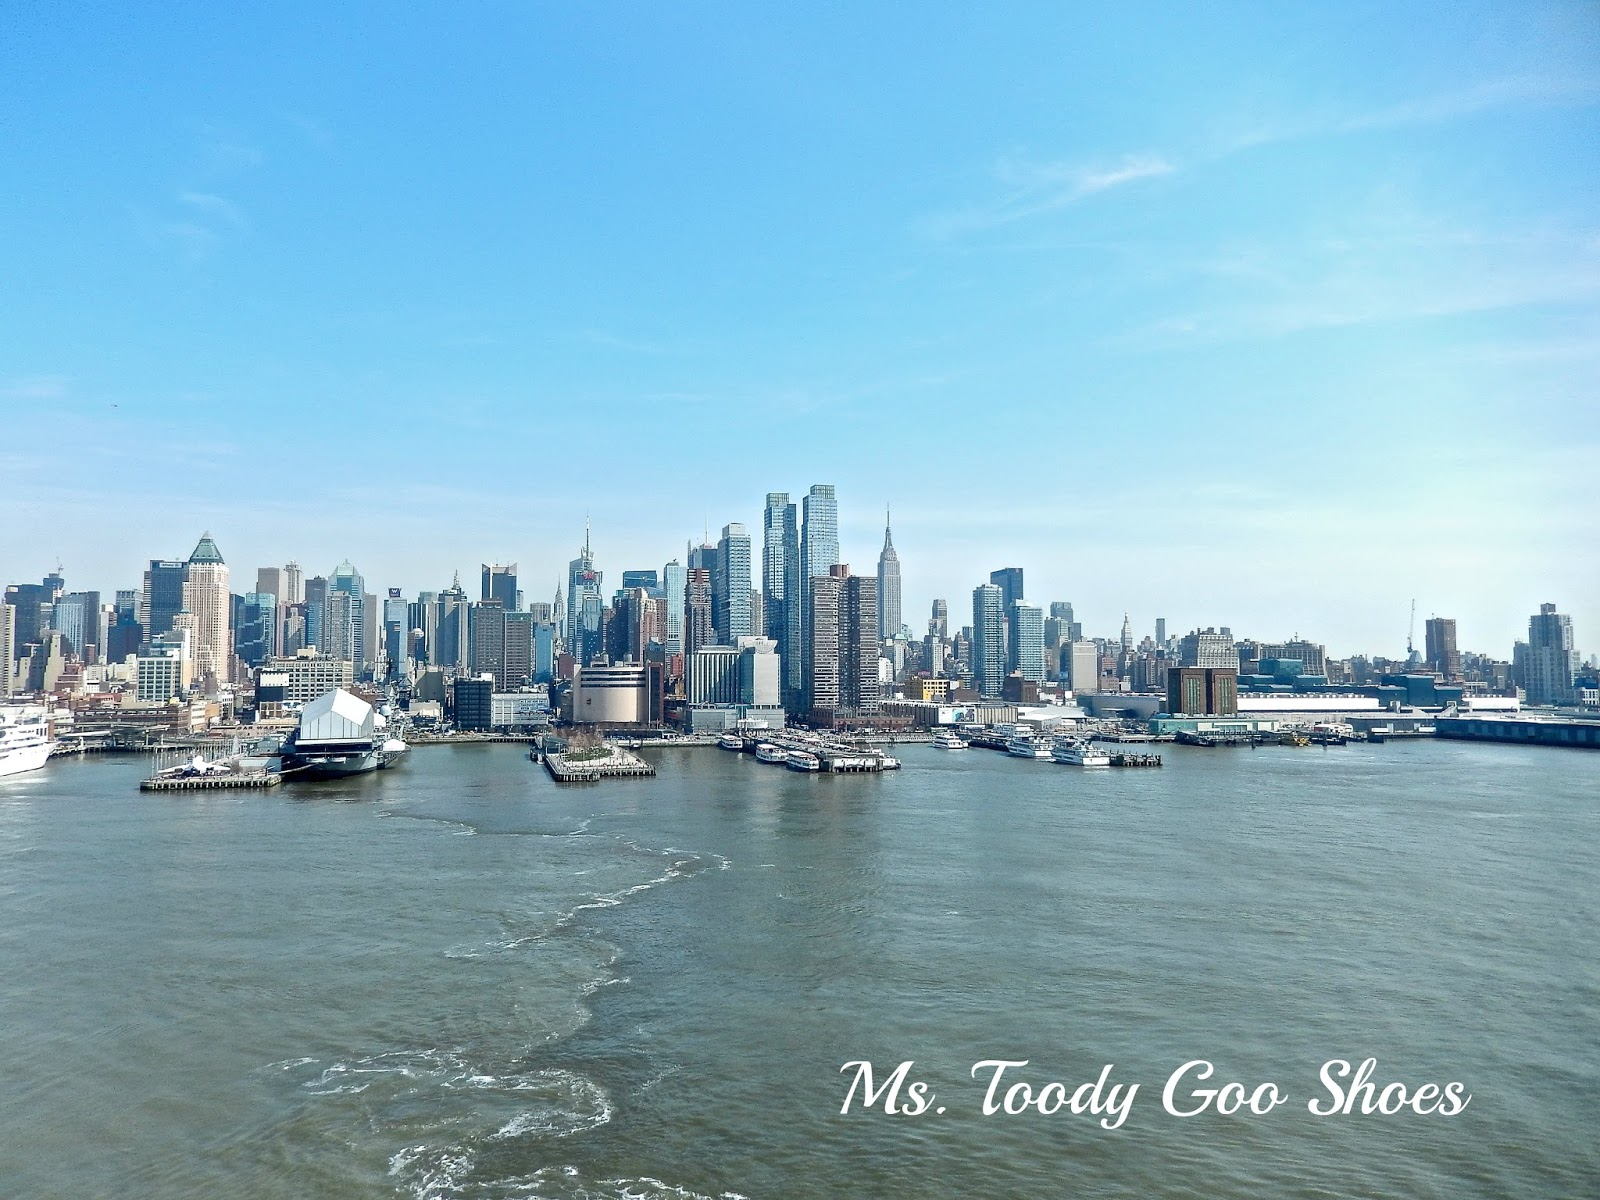 NYC Skyline from Norwegian Breakaway Cruise Ship  --- Ms. Toody Goo Shoes